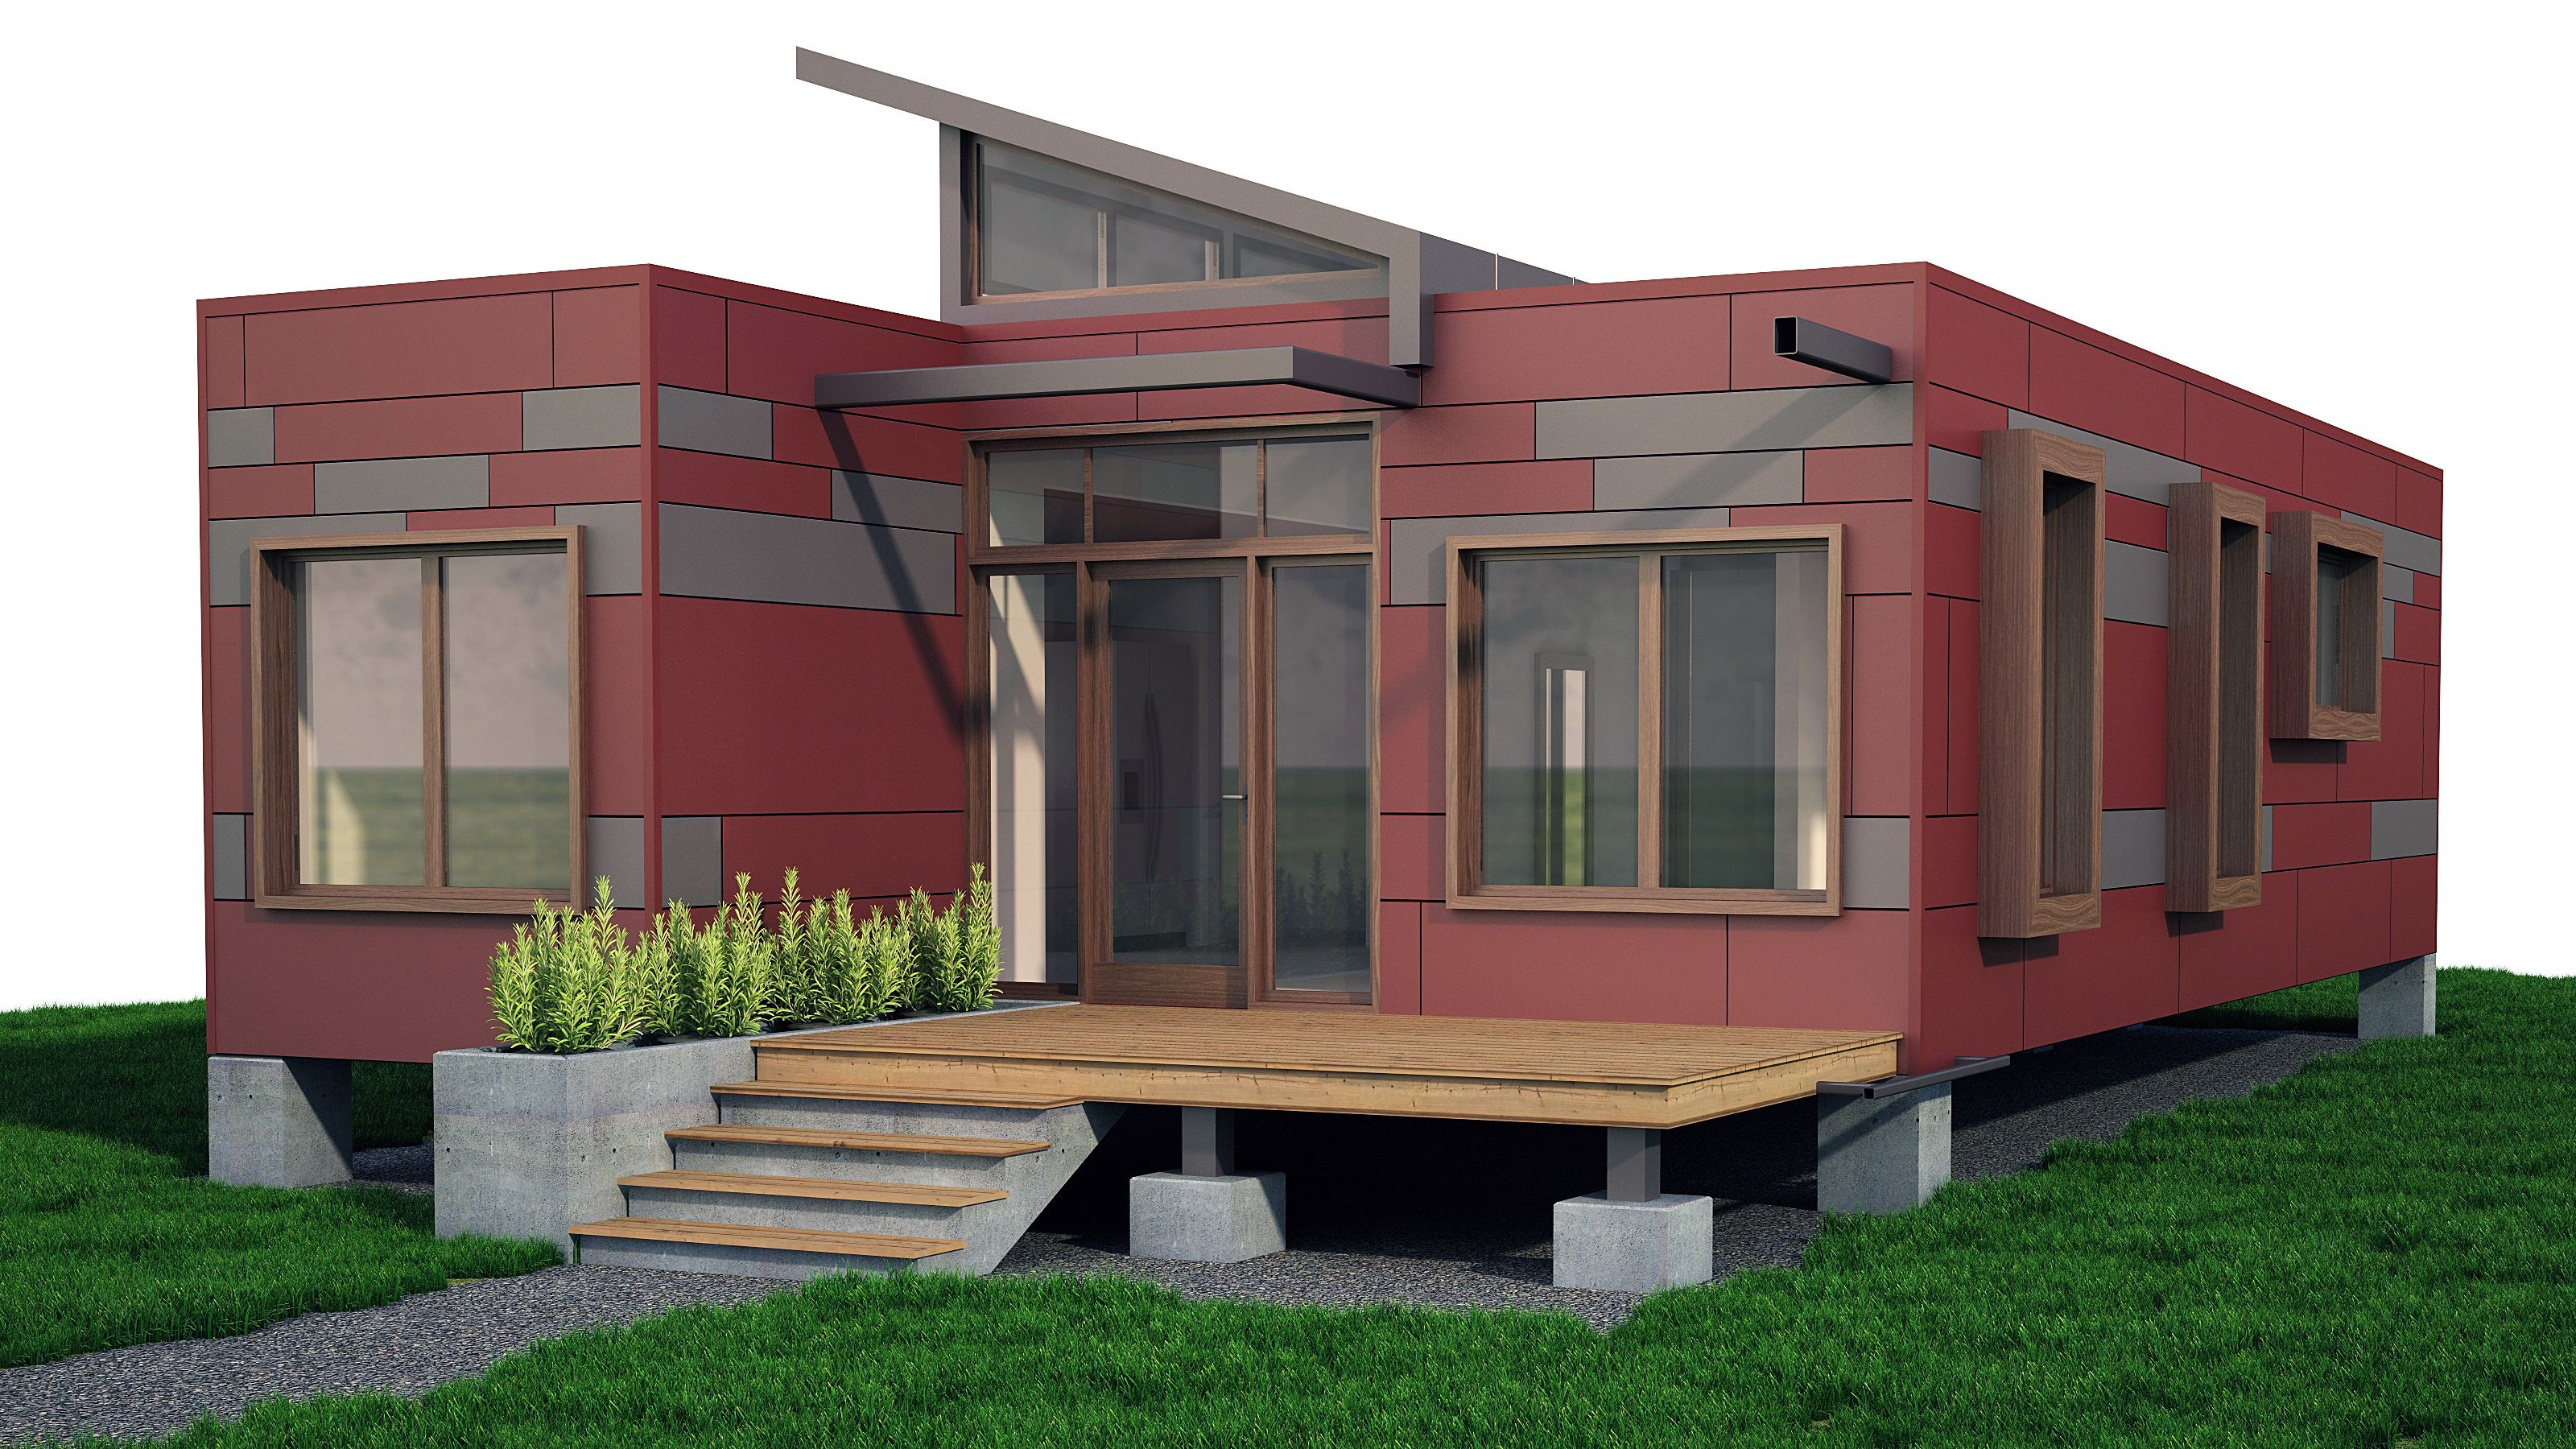 Best Kitchen Gallery: Tiny House Container Поиск в Google Архитектура Pinterest of Google Shipping Container Homes on rachelxblog.com